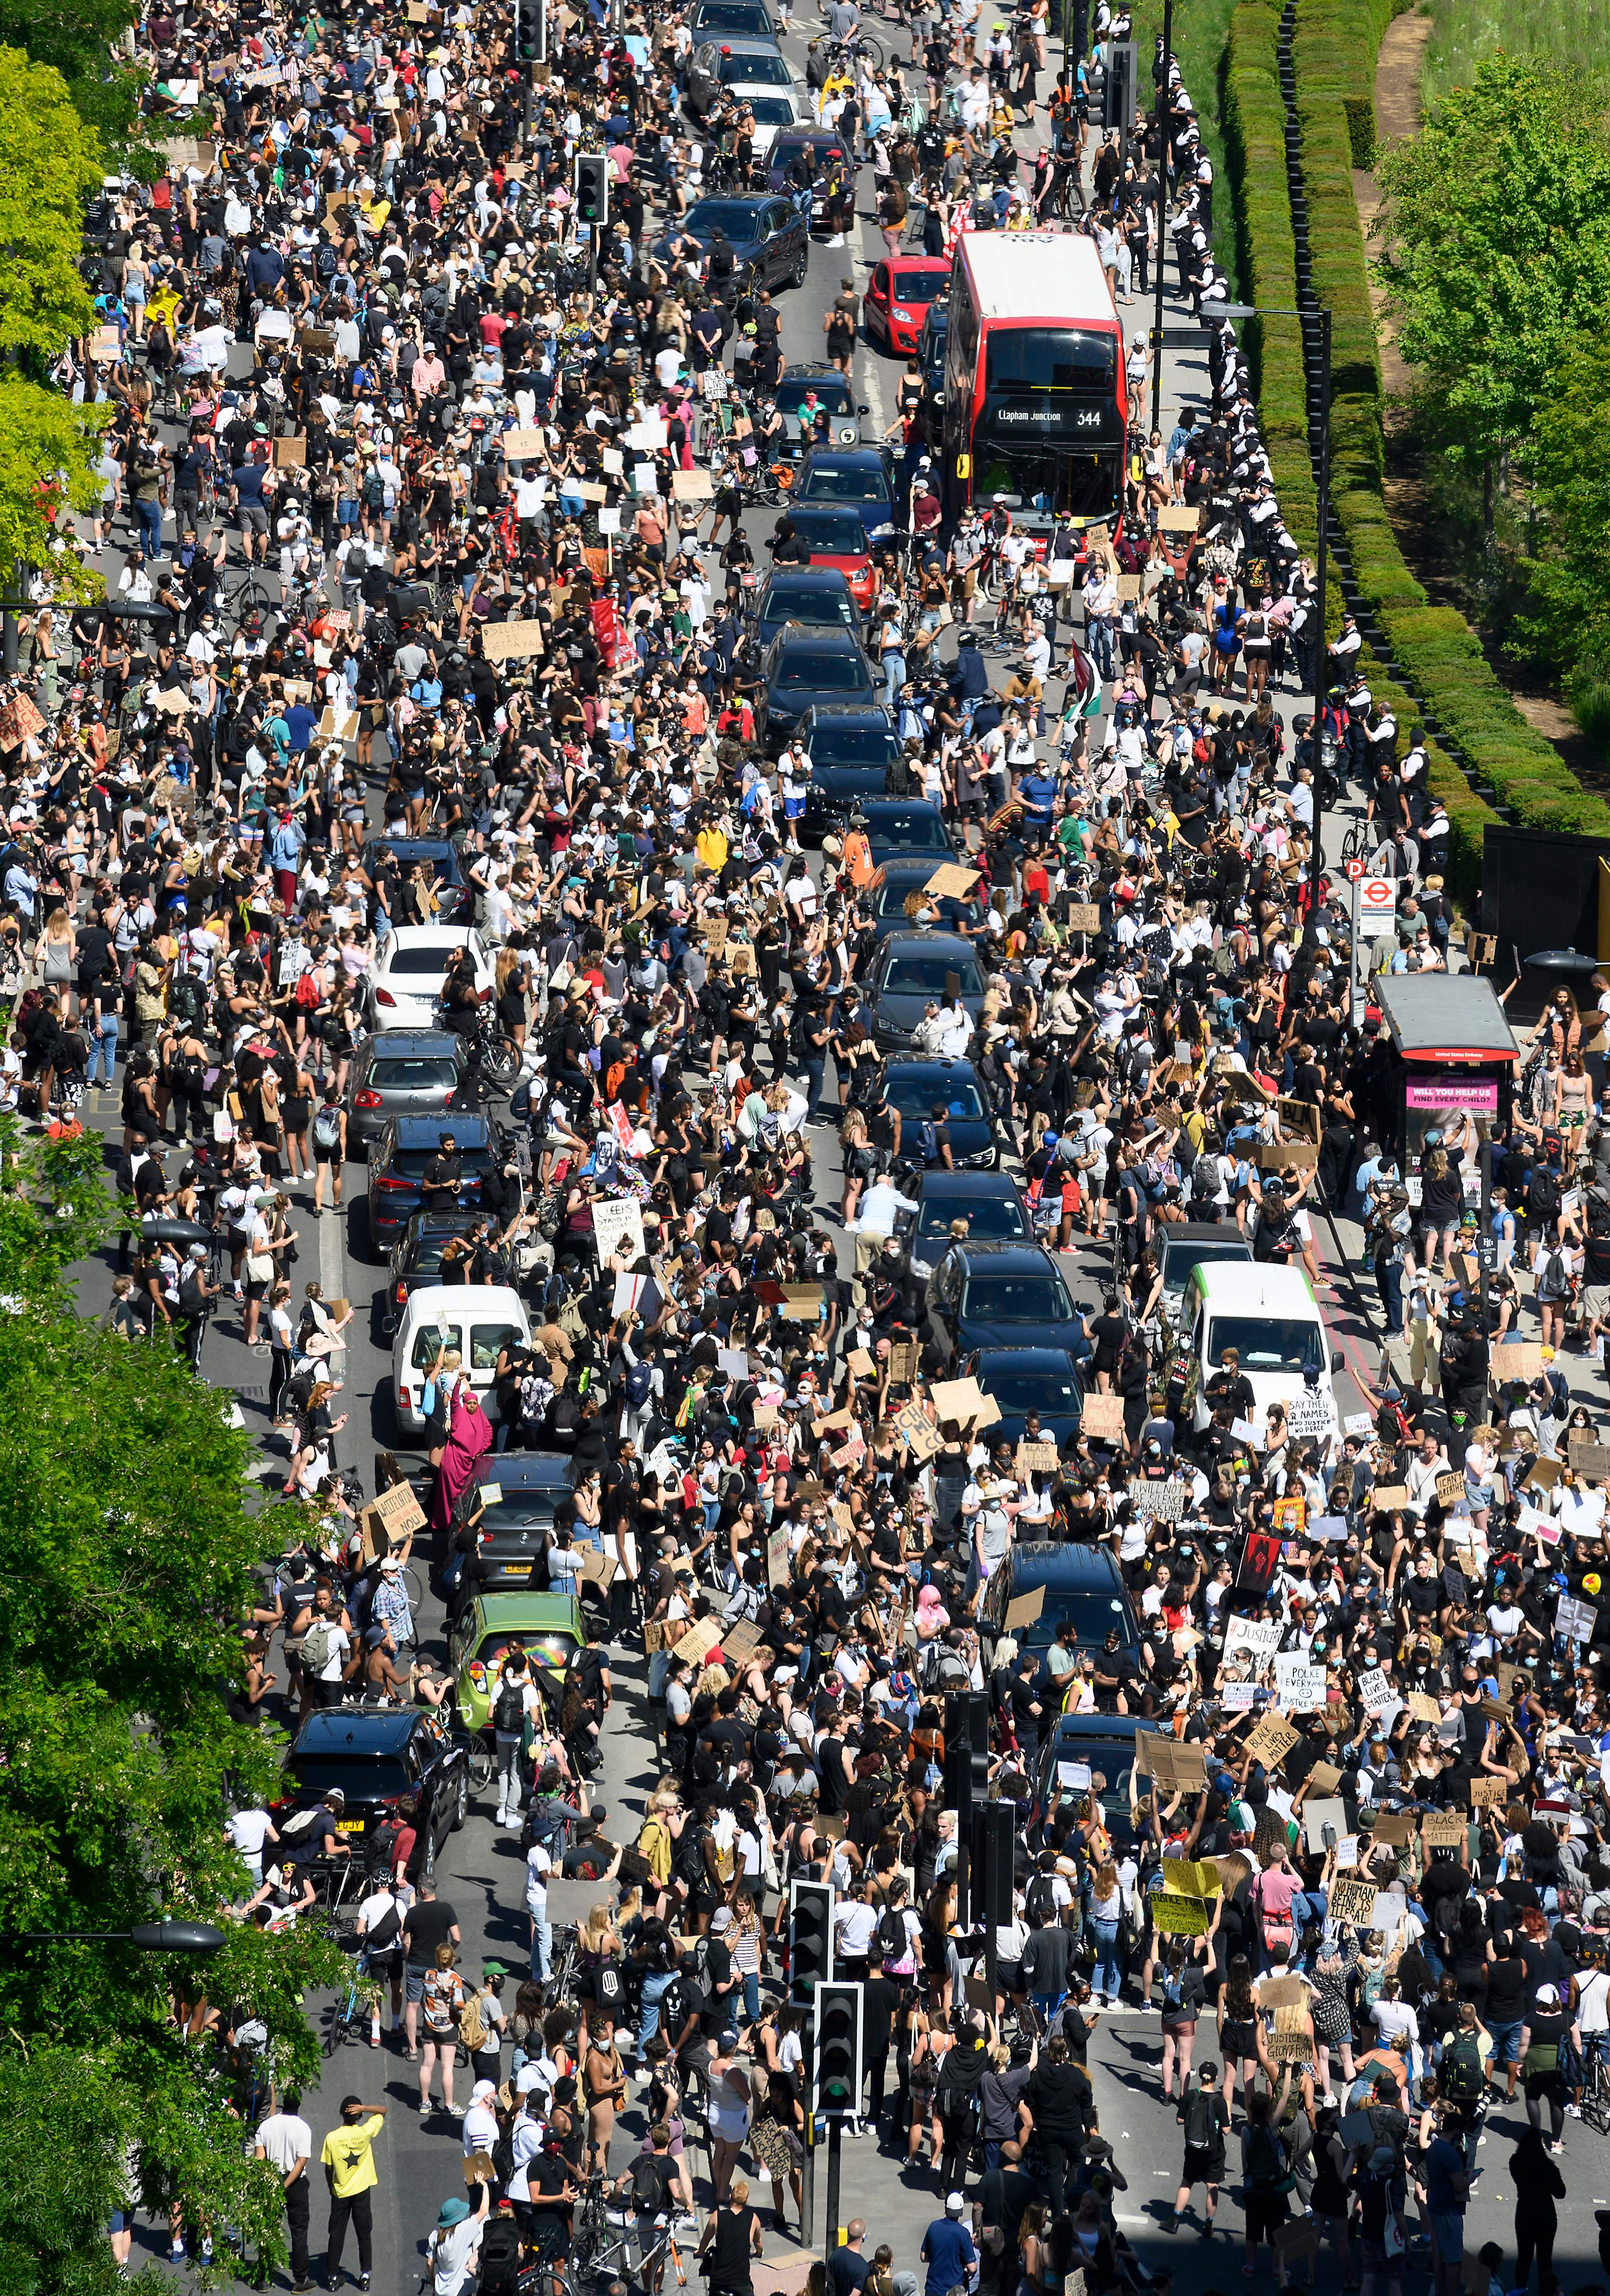 Demonstrators block the road as they gather outside the US Embassy in London on May 31, 2020 to protest the death of George Floyd, an unarmed black man who died after a police officer knelt on his neck for nearly nine minutes during an arrest in Minneapolis, USA. - Hundreds gathered in central London and marched to teh US Embassy to protest the death of an unarmed black man in Minneapolis while in police custody that has sparked days of unrest in the US city and beyond. (Photo by JUSTIN TALLIS / AFP) / The erroneous mention[s] appearing in the metadata of this photo by JUSTIN TALLIS has been modified in AFP systems in the following manner: [London] instead of [Brighton]. Please immediately remove the erroneous mention[s] from all your online services and delete it (them) from your servers. If you have been authorized by AFP to distribute it (them) to third parties, please ensure that the same actions are carried out by them. Failure to promptly comply with these instructions will entail liability on your part for any continued or post notification usage. Therefore we thank you very much for all your attention and prompt action. We are sorry for the inconvenience this notification may cause and remain at your disposal for any further information you may require. (Photo by JUSTIN TALLIS/AFP via Getty Images)